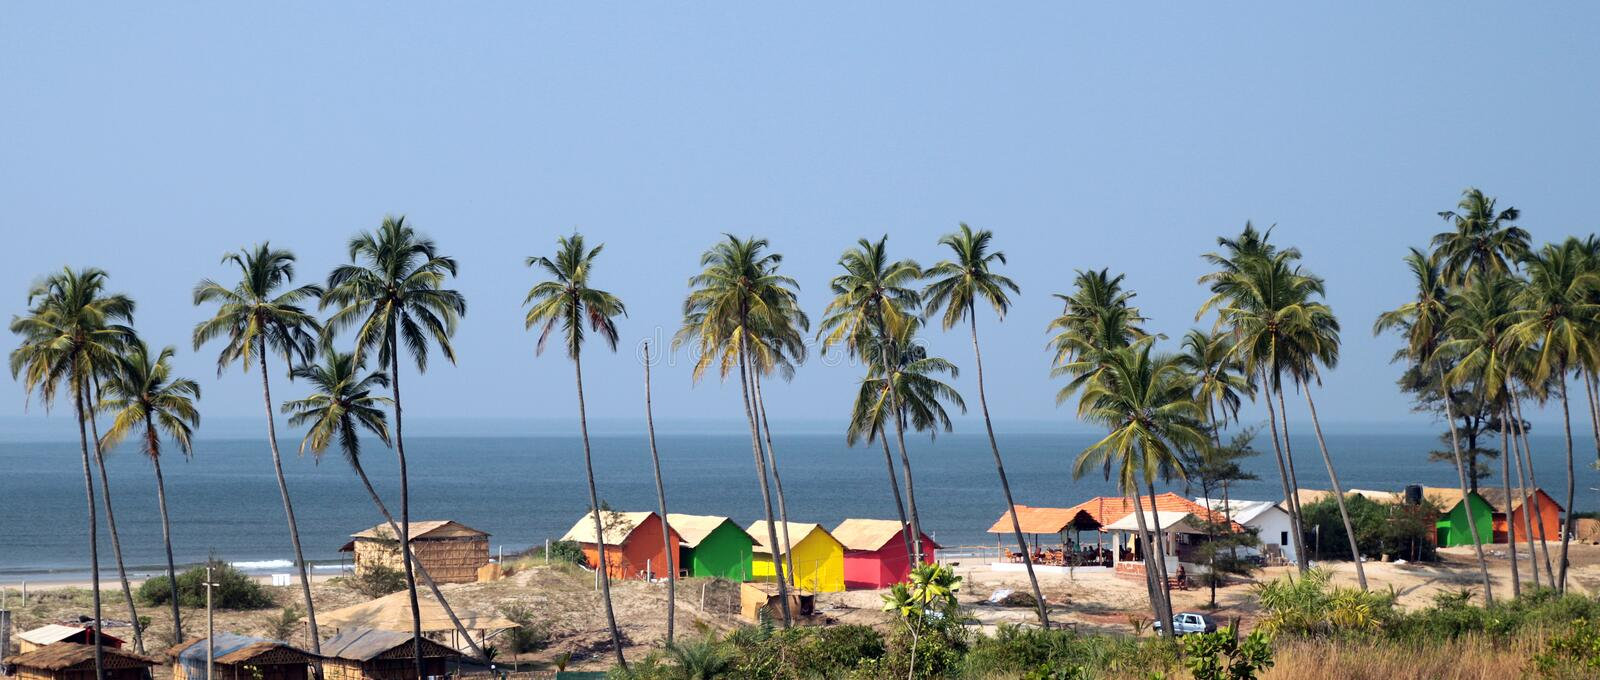 Plage de Goa images stock